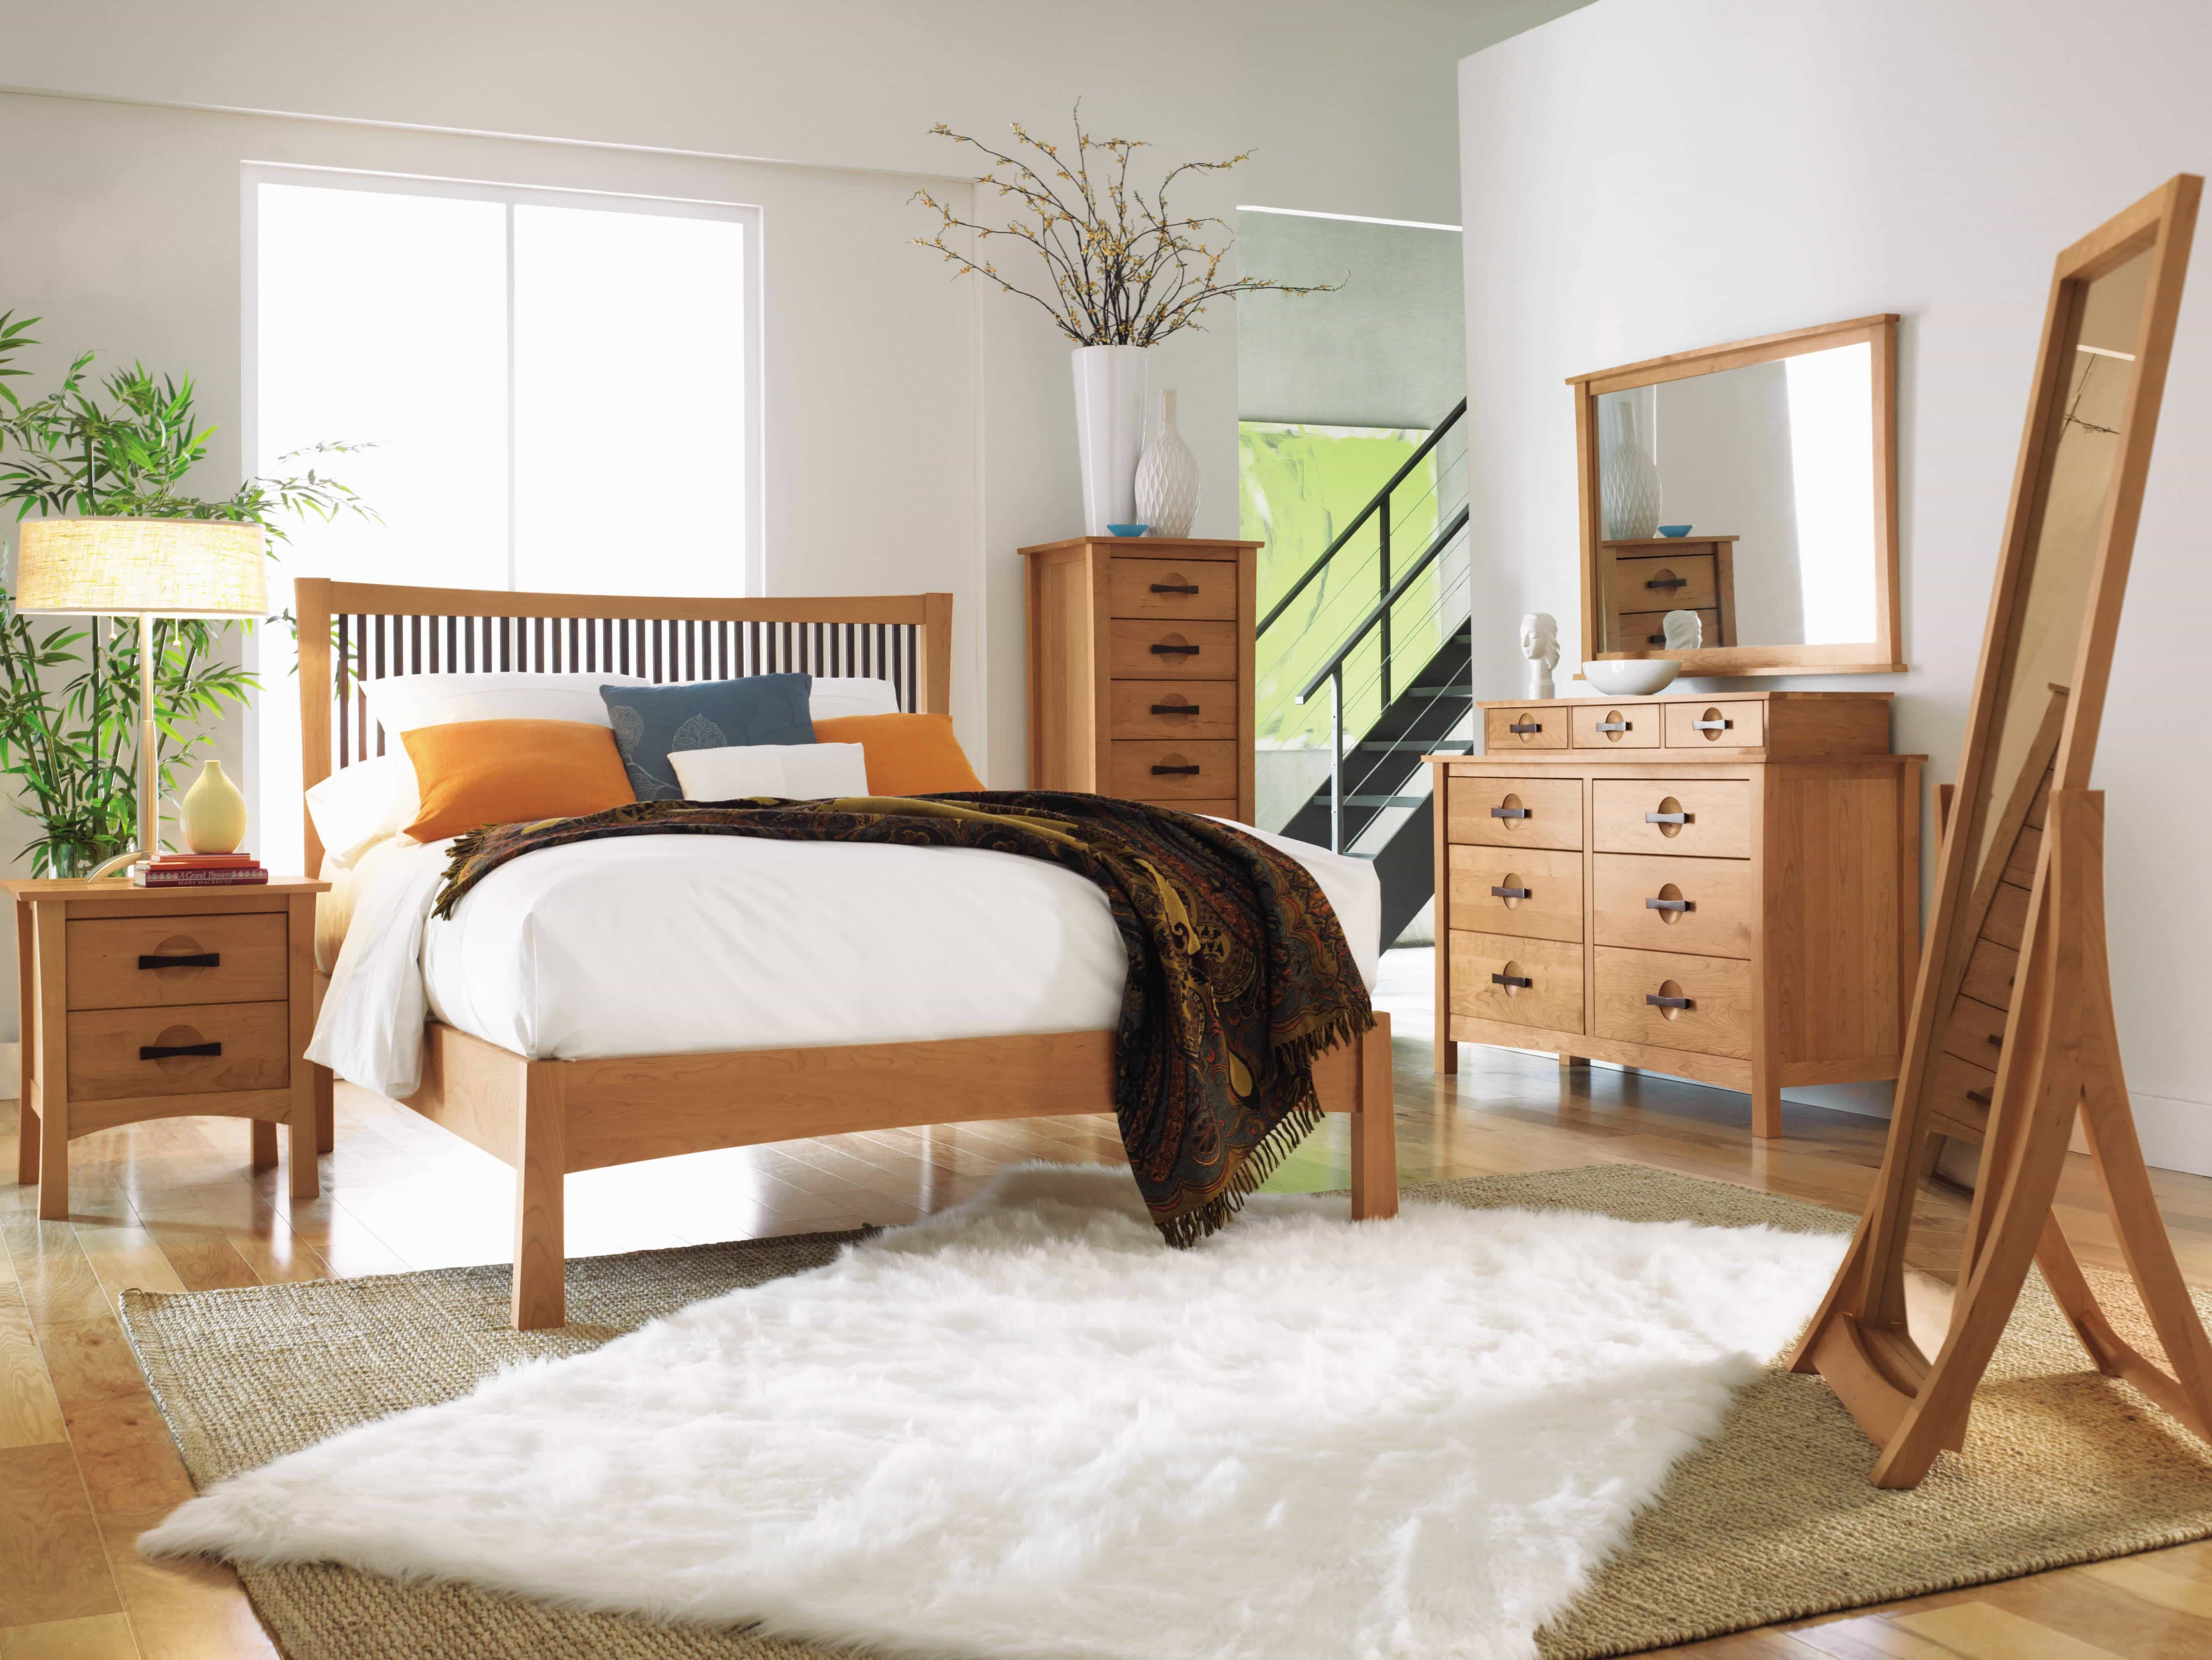 Bedroom & More | San Carlos /Luxury Furniture/Mattress Store